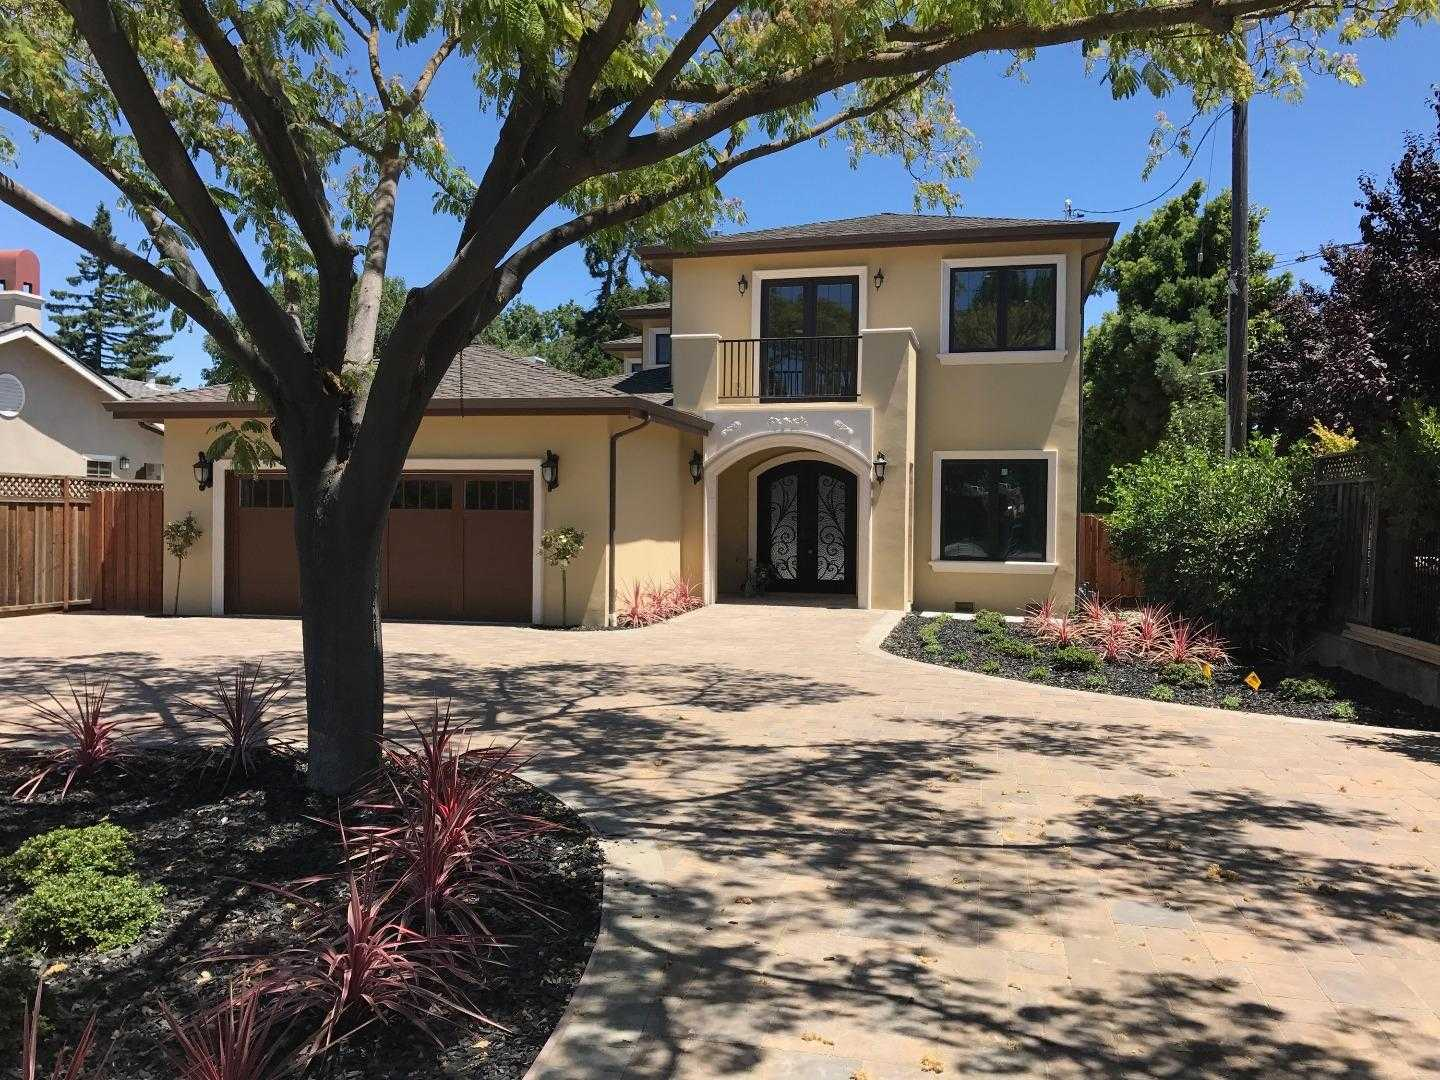 $2,749,900 - 4Br/5Ba -  for Sale in San Jose